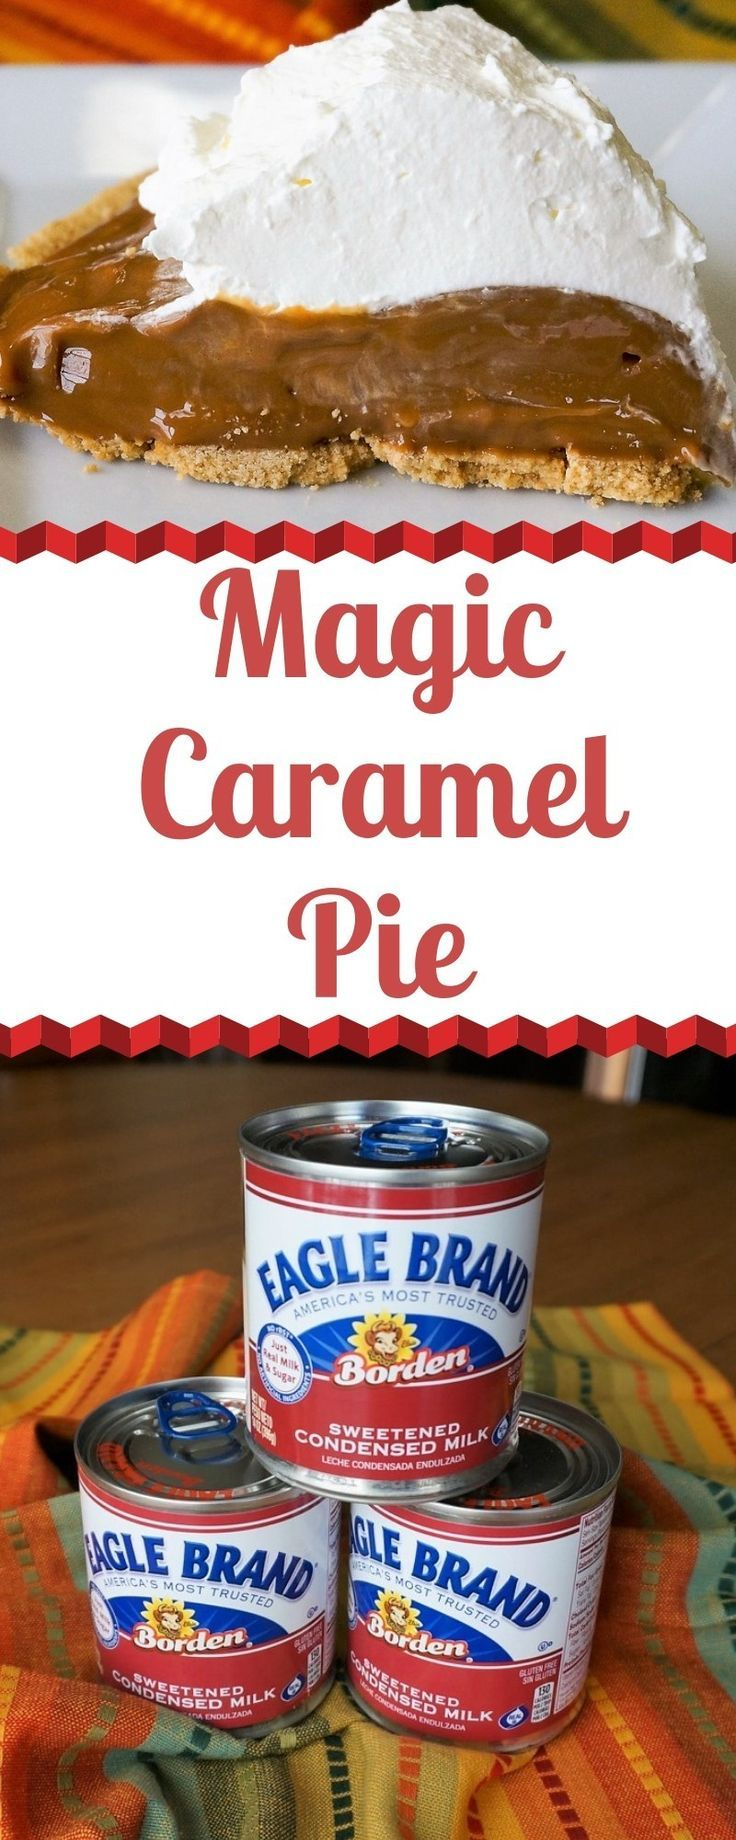 Magic Caramel Pie Recipe Caramel Pie Caramel Recipes Condensed Milk Recipes